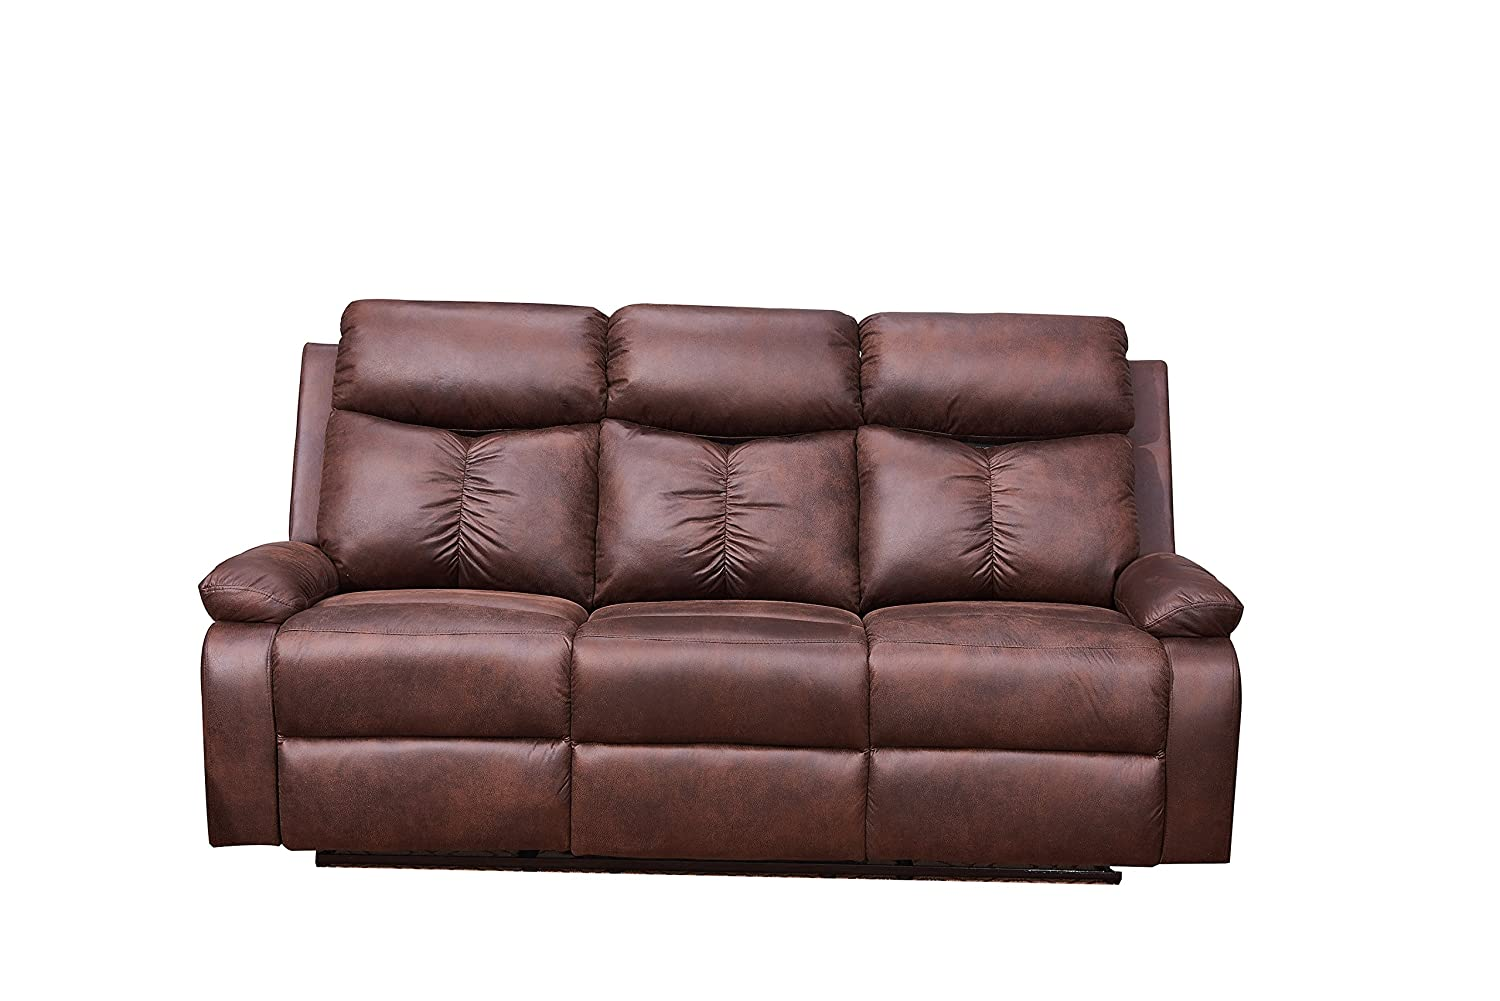 Betsy Furniture Microfiber Fabric Recliner Sofa Set Living Room Set in Brown 8065 Living Room Set 3 1